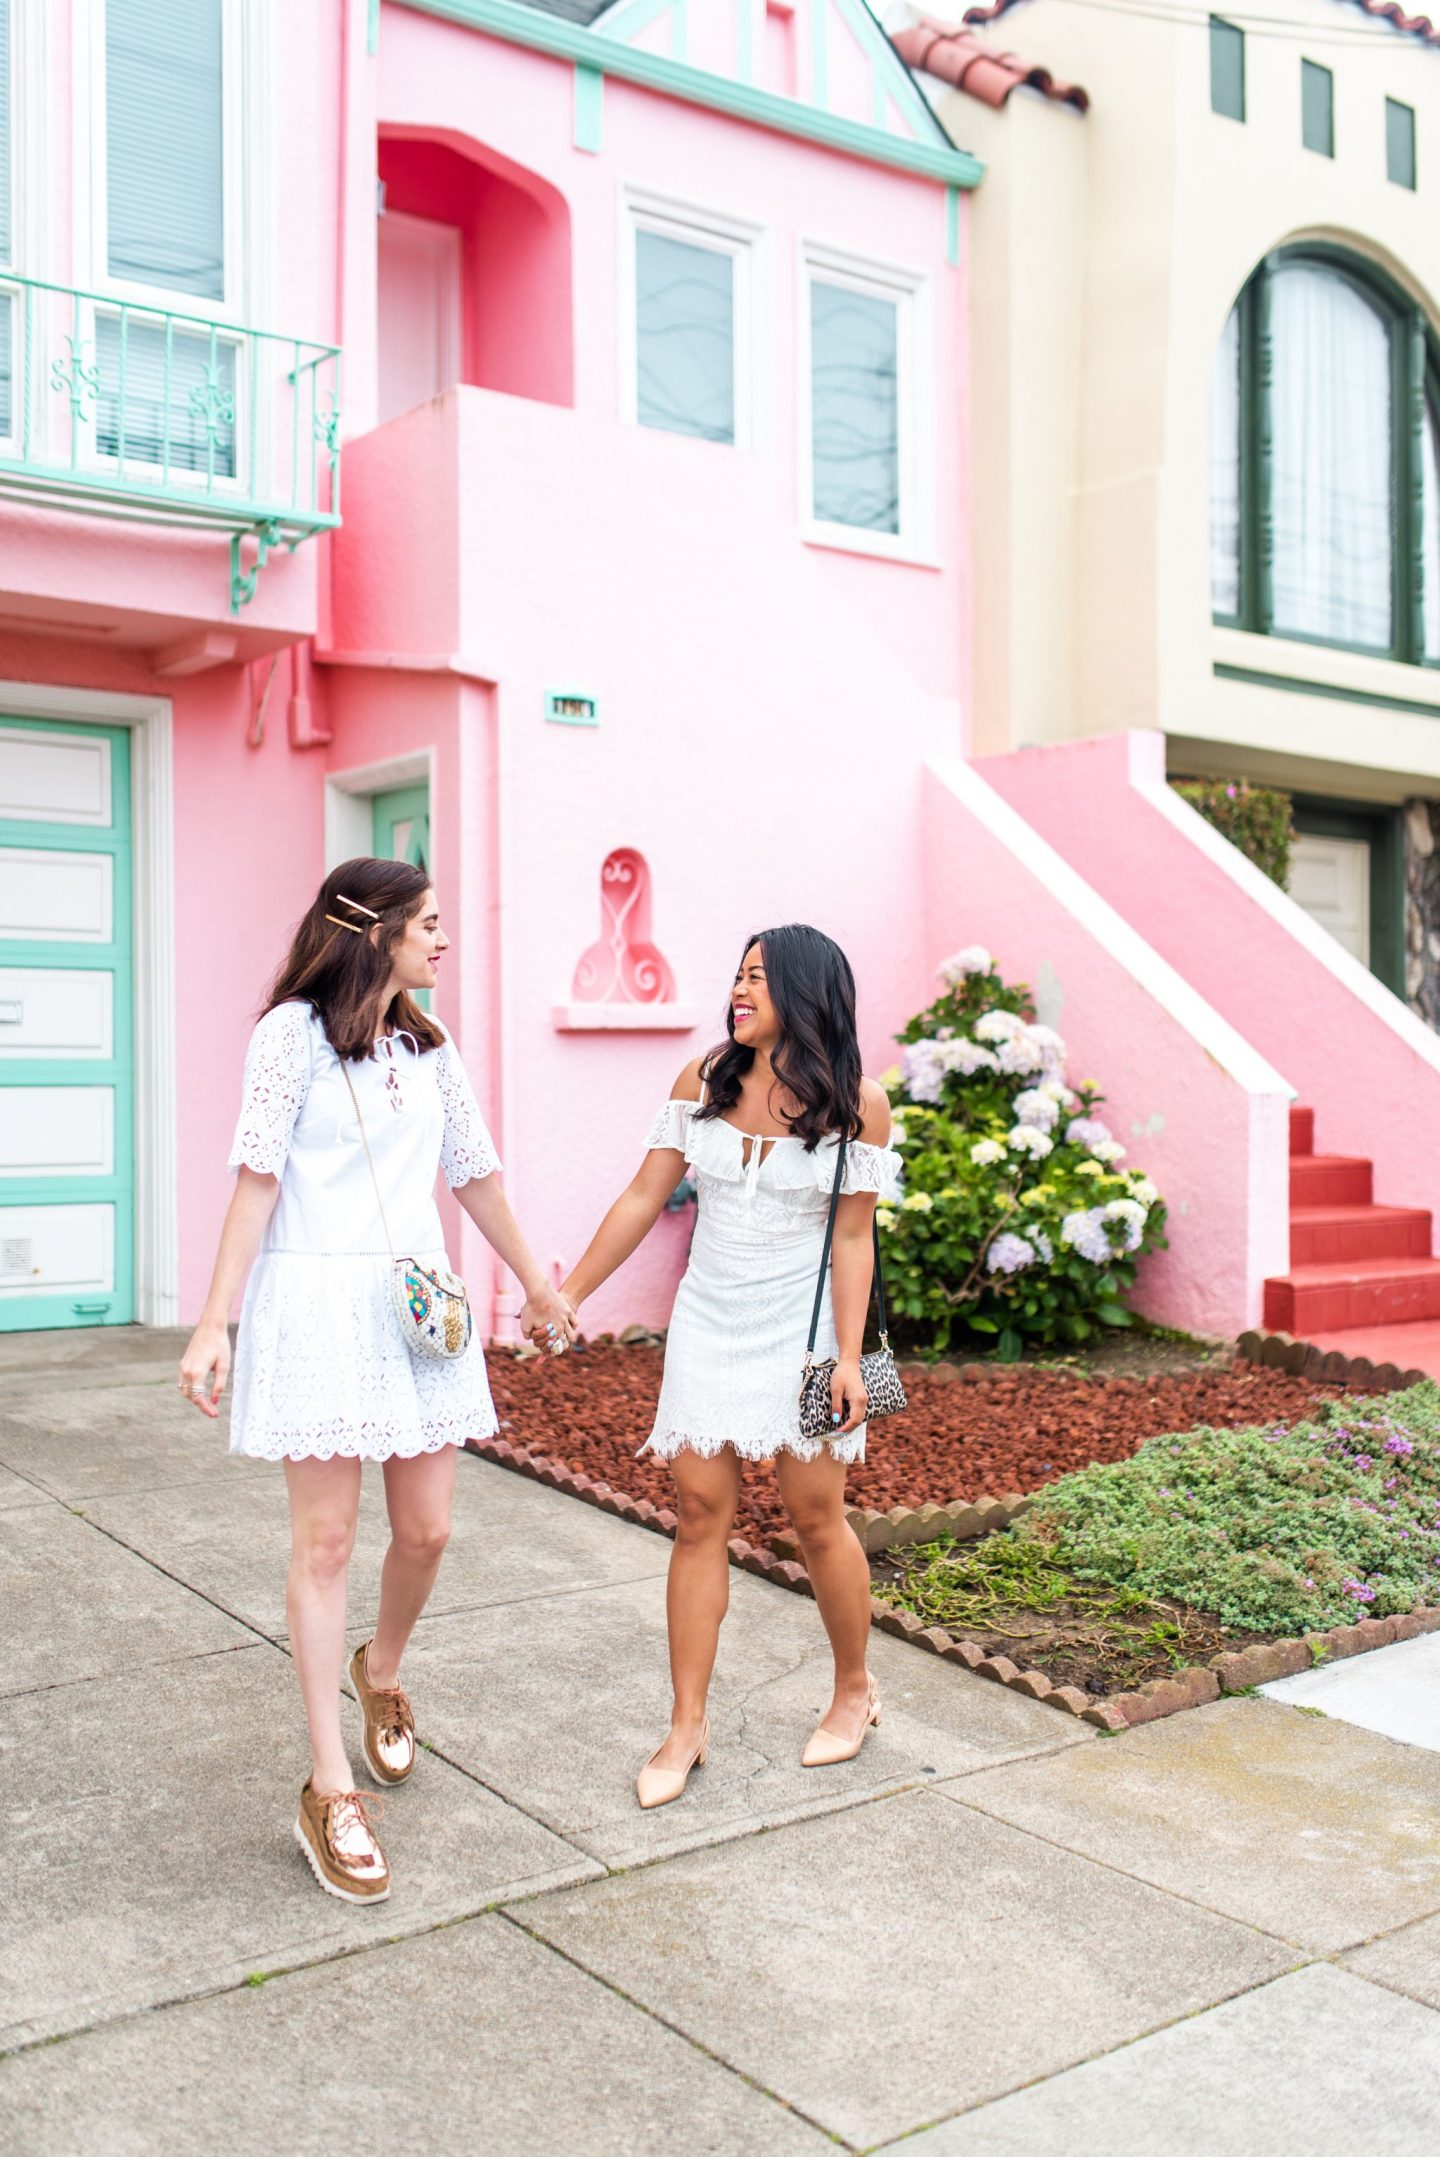 San Francisco Sunset Neighborhood - Bright Pink House - Best friends